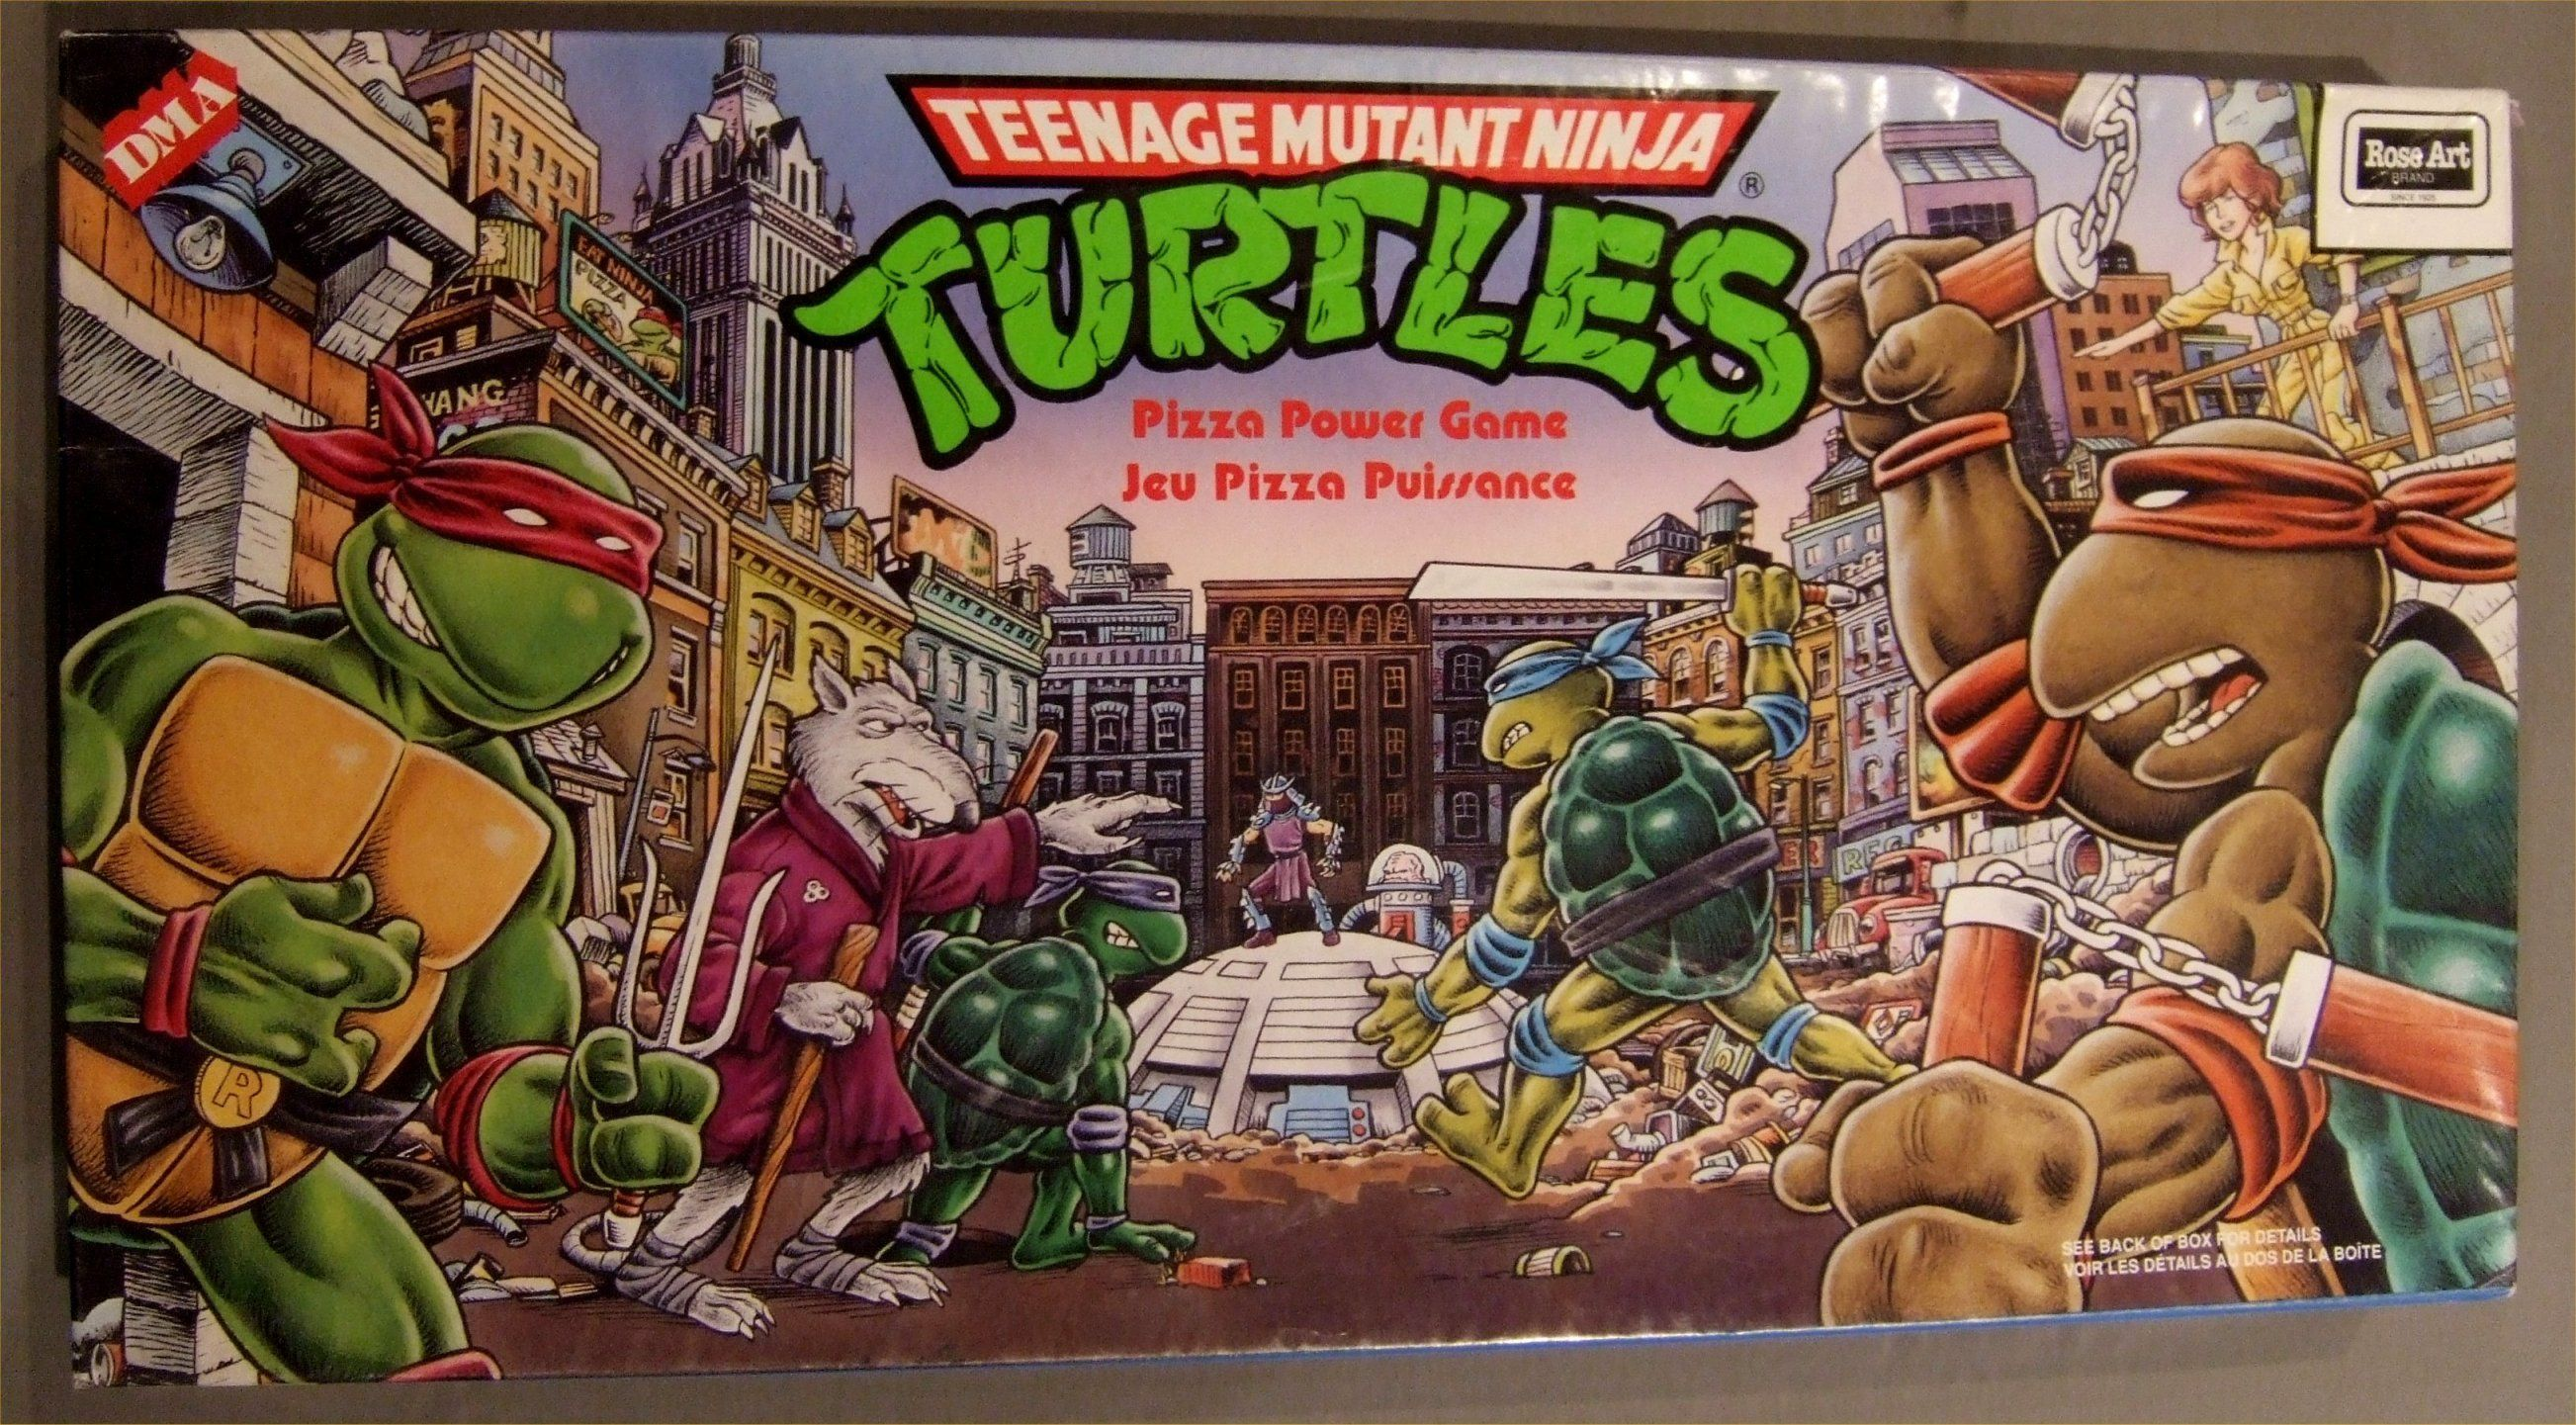 Teenage Mutant Ninja Turtles: Pizza Power Game